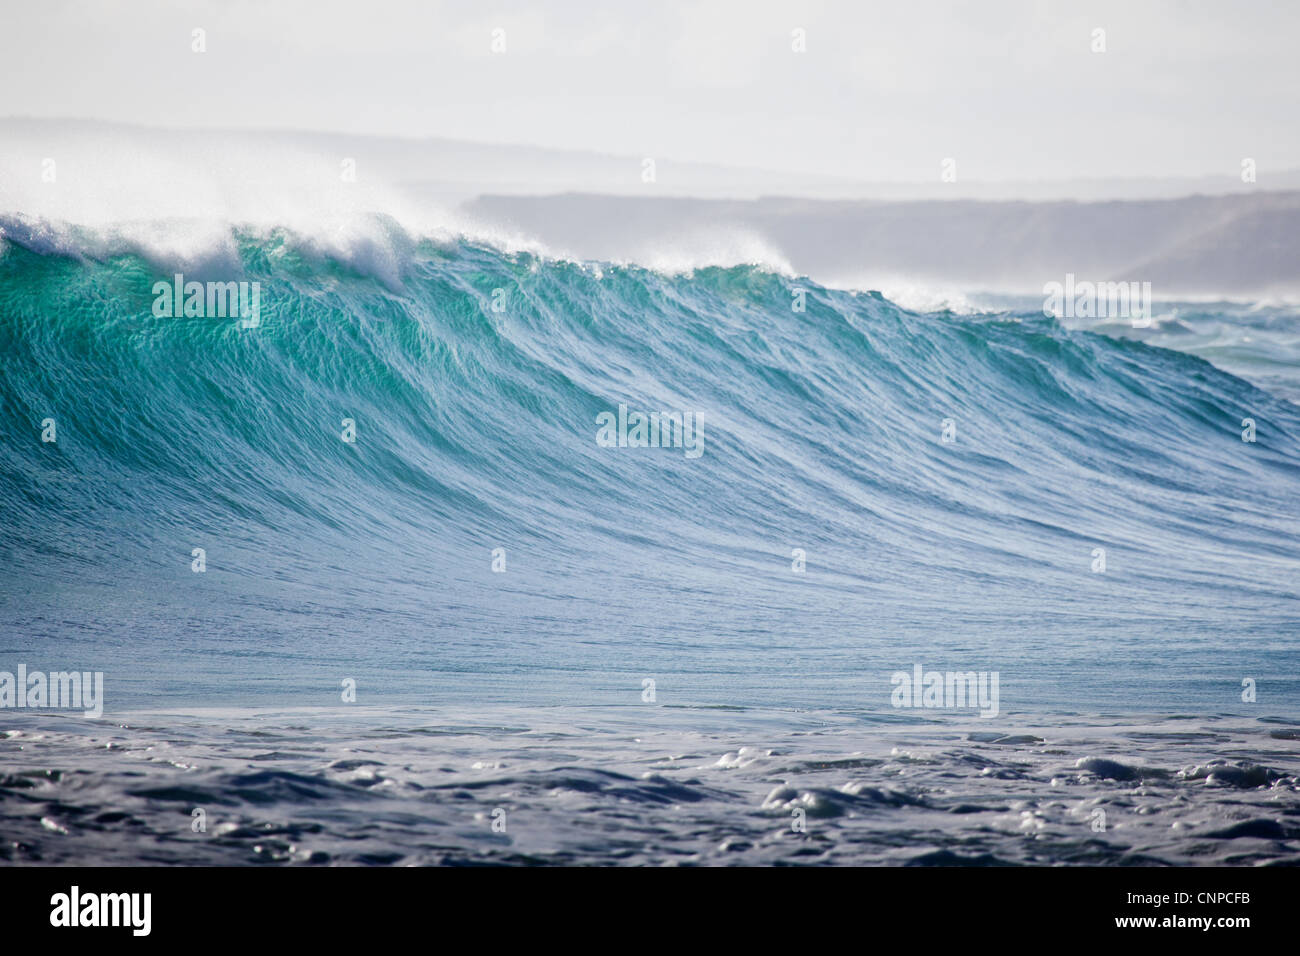 Wave breaking at Greenly Beach South Australia - Stock Image